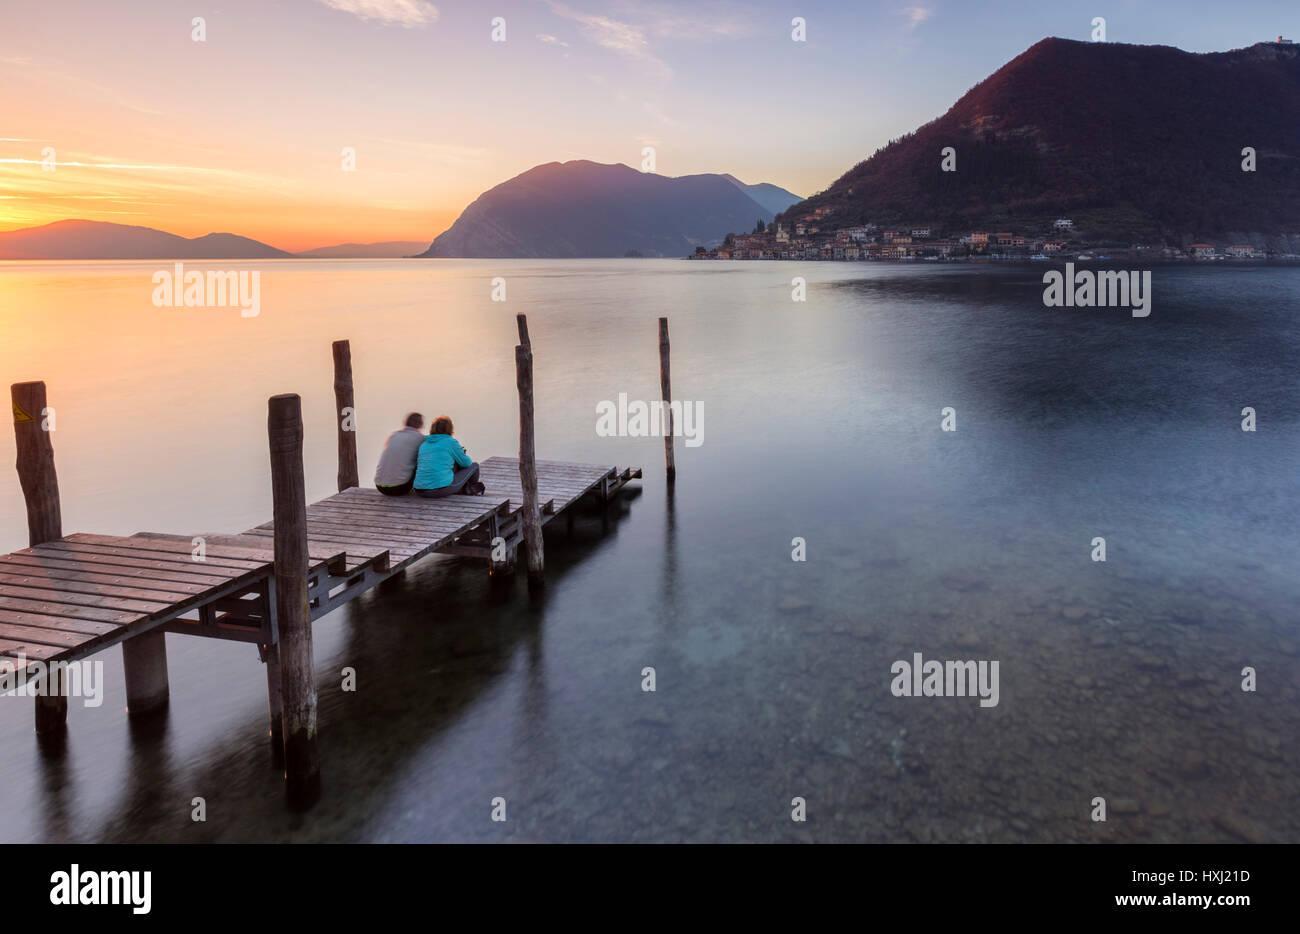 A couple on the pier of Sulzano, in front of Monte Isola, Brescia Province, Iseo Lake, Lombardy, Italy. - Stock Image